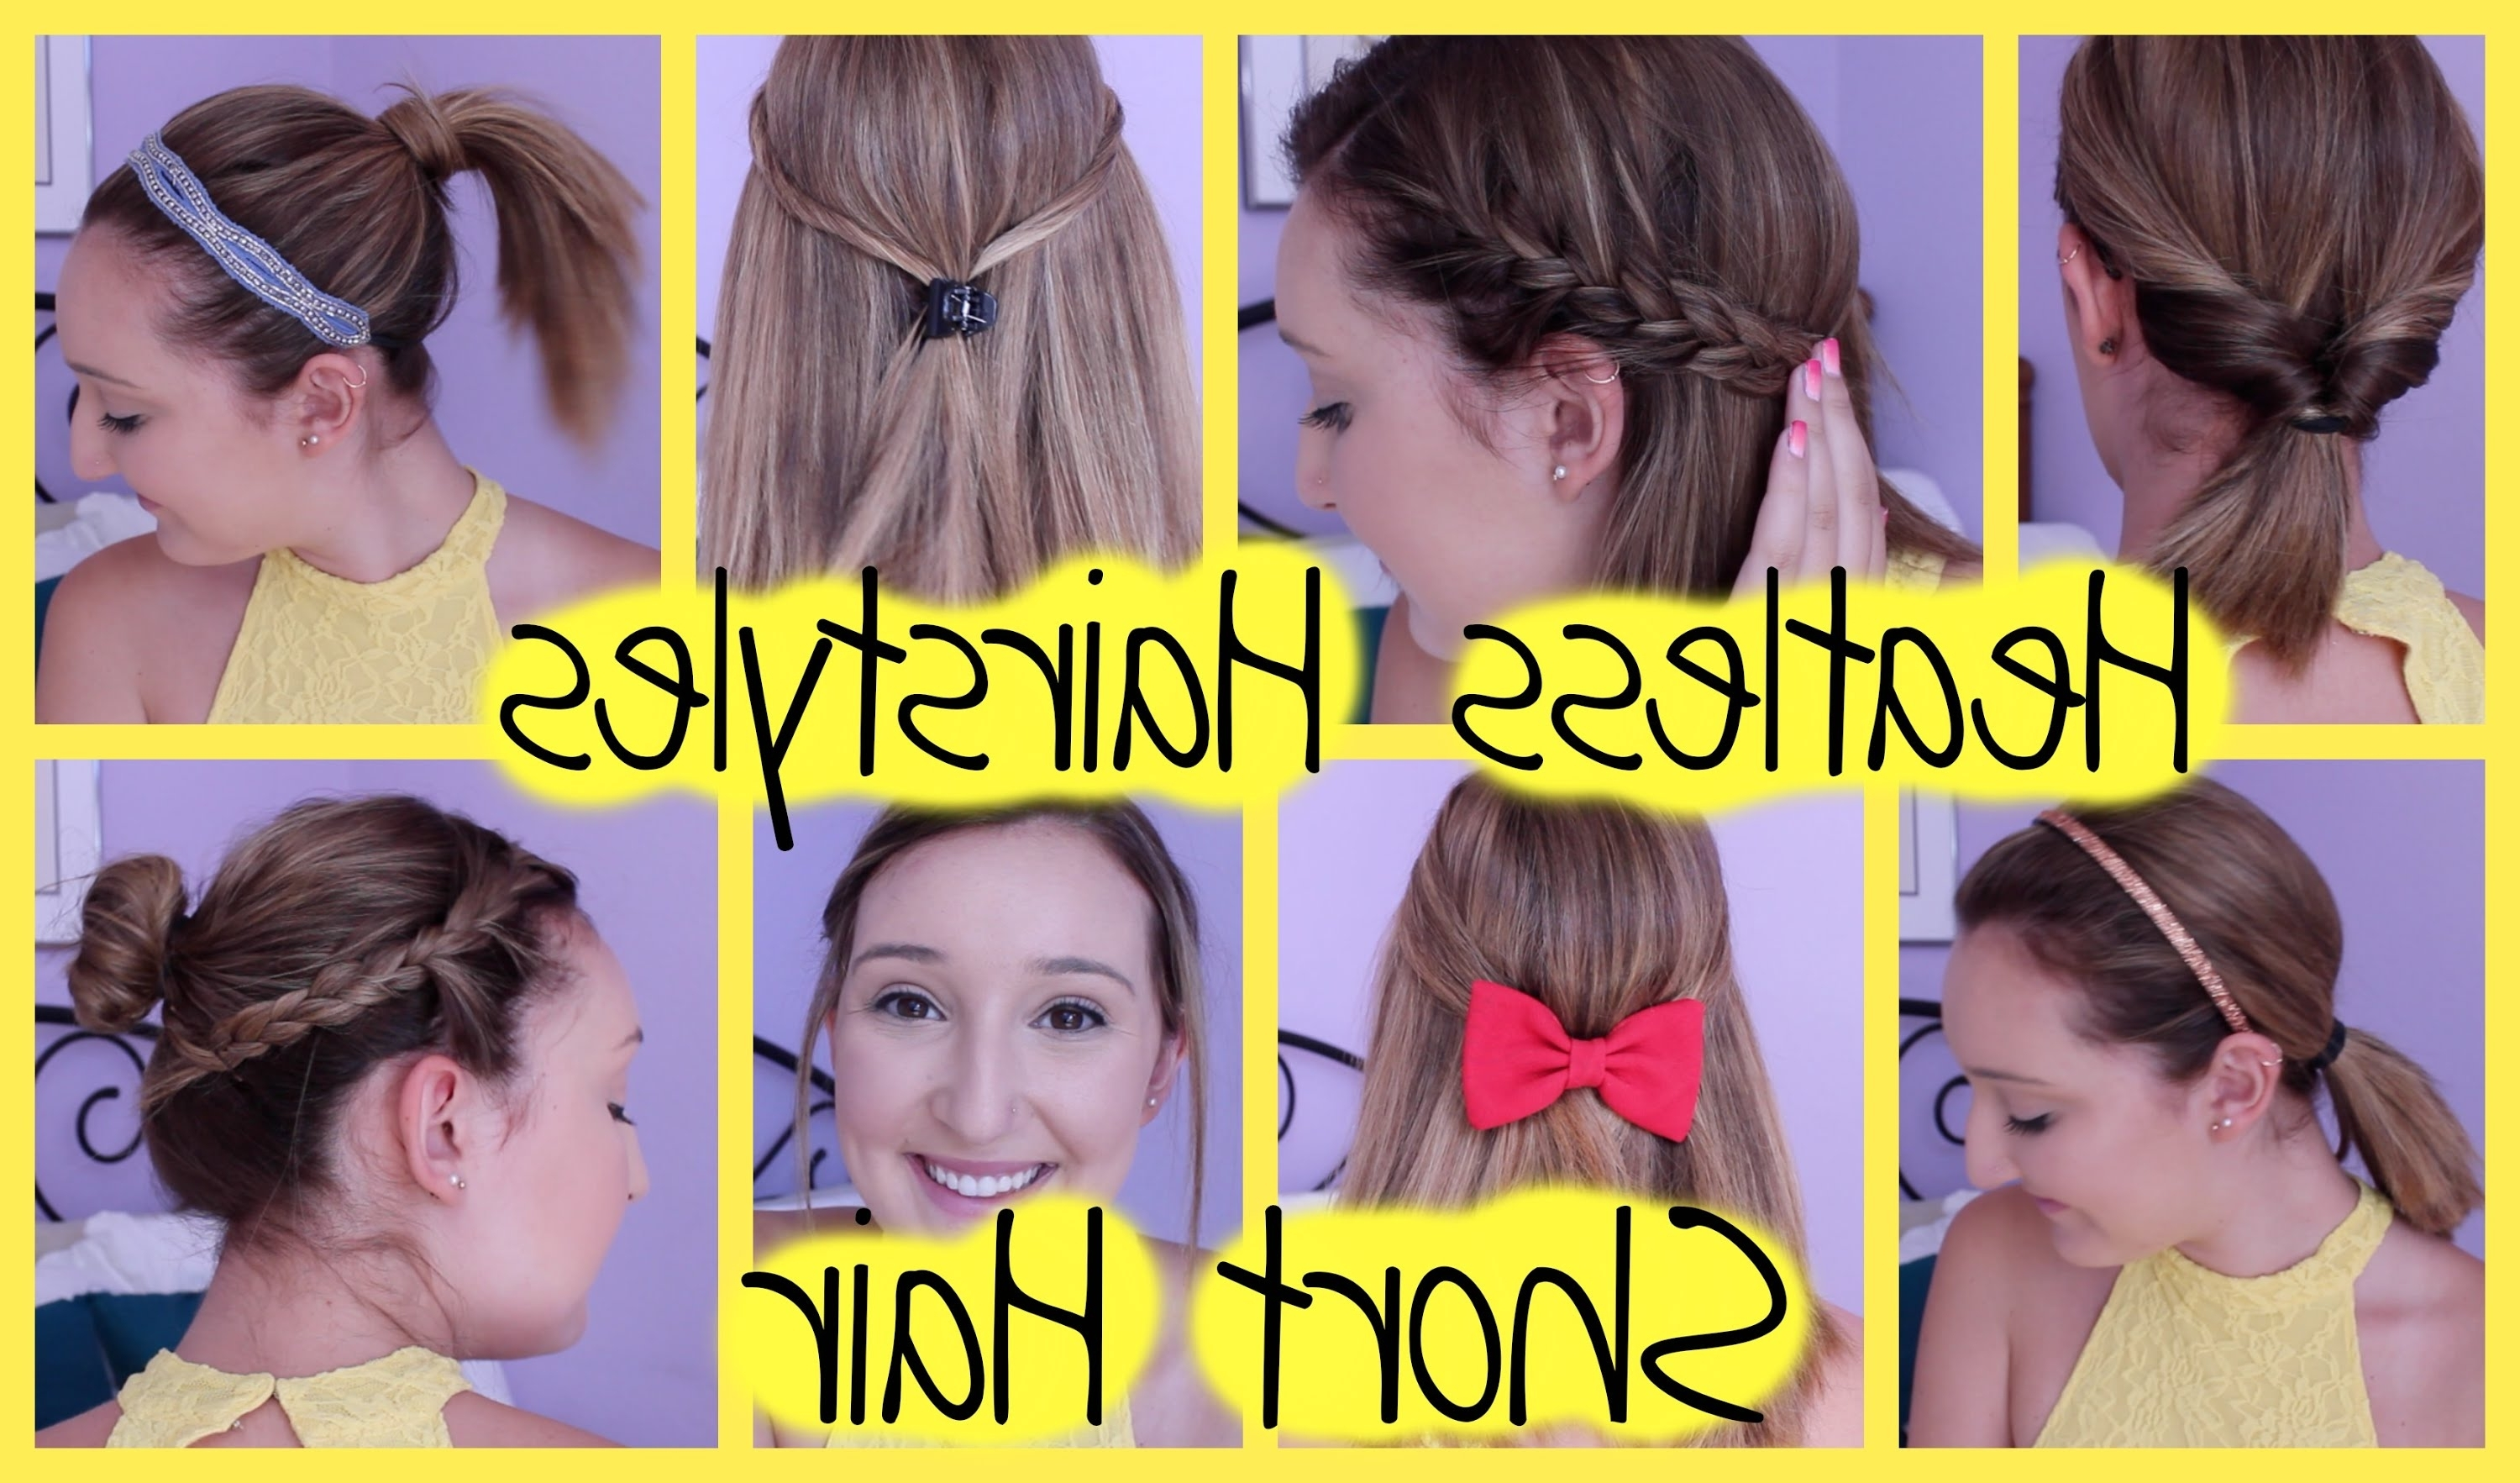 8 Heatless Hairstyles For Short Hair (Easy & Quick For Back To Intended For Quick Easy Short Updo Hairstyles (View 5 of 15)